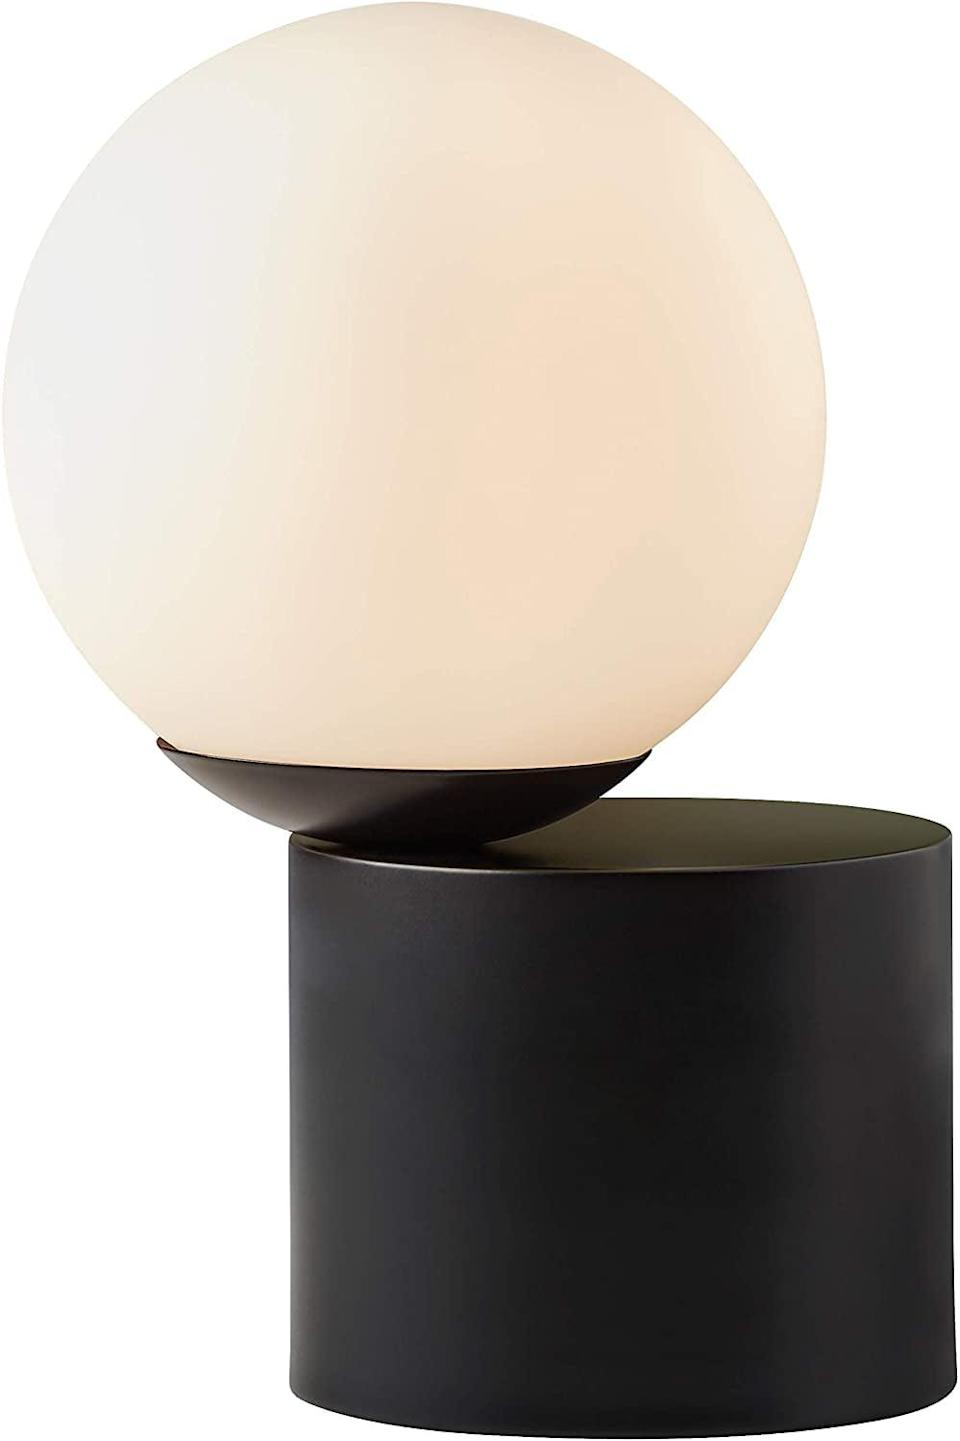 <p>This <span>Rivet Modern Glass Globe Living Room Table Desk Lamp</span> ($32, originally $35) also comes in gold. </p>